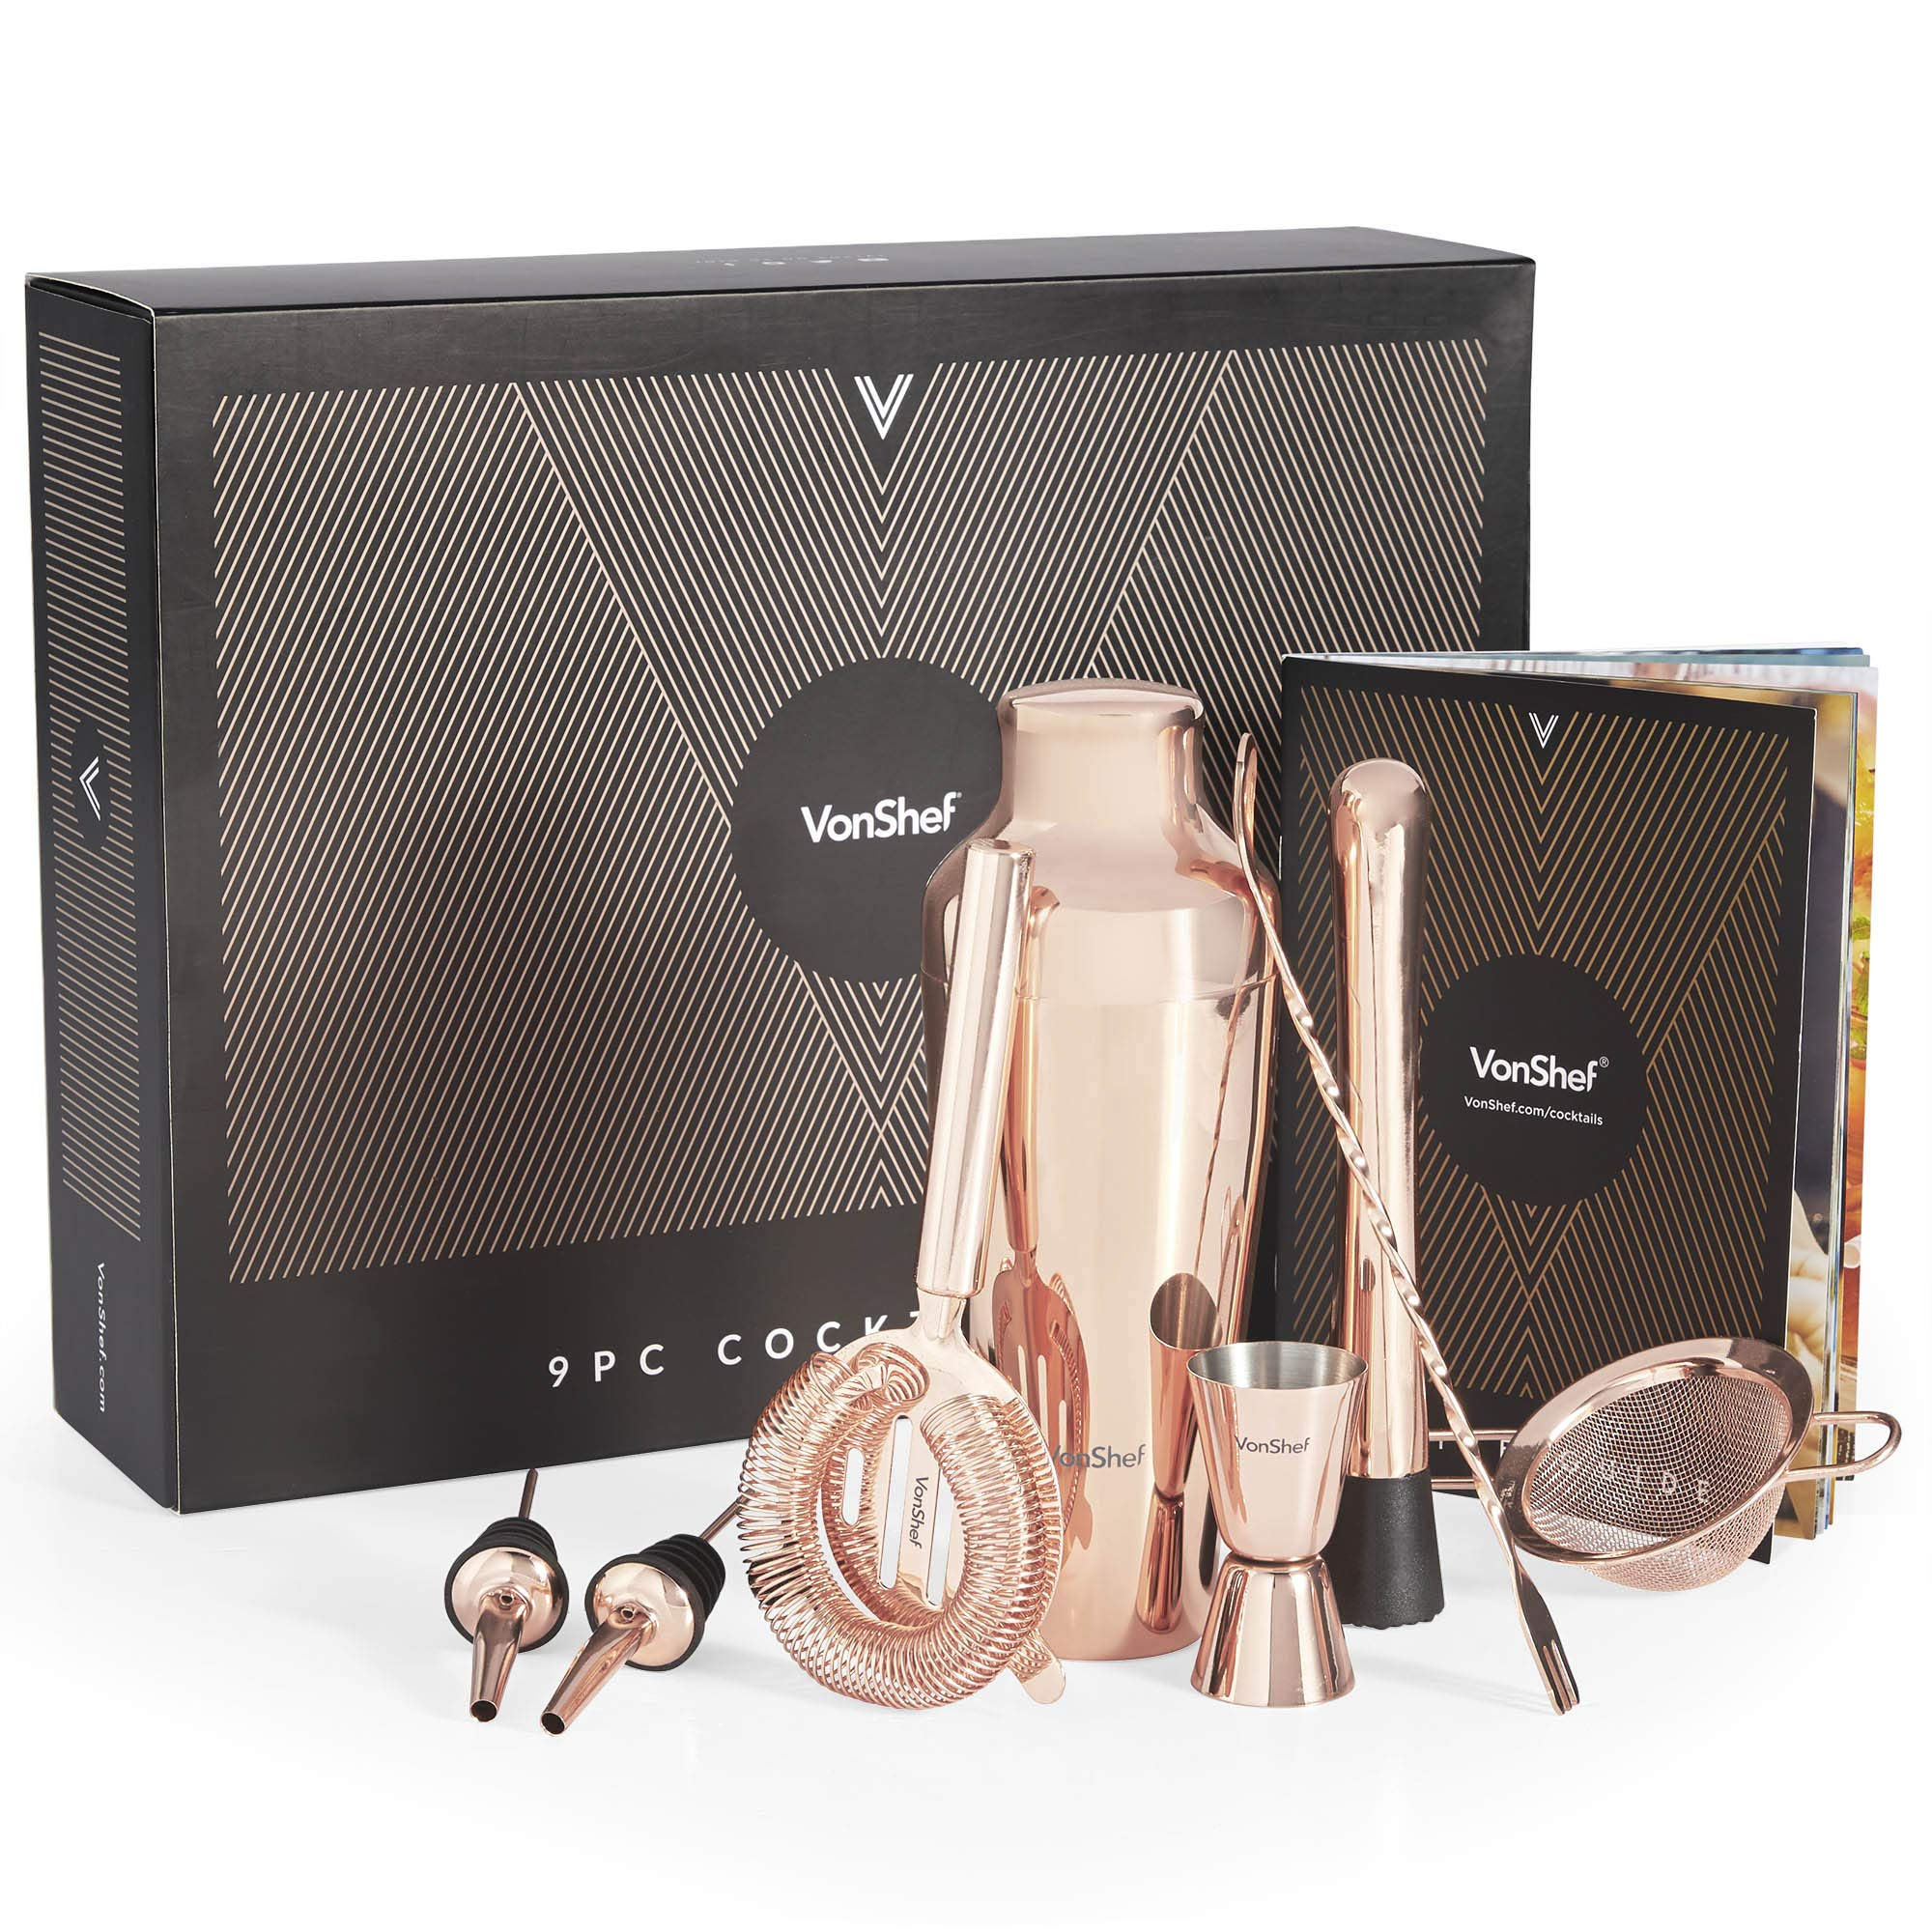 VonShef Parisian Cocktail Shaker Barware Set in Gift Box with Recipe Guide, Cocktail Strainers, Twisted Bar Spoon, Jigger, Muddler and Pourers, Copper, 9 Piece Set, 17oz by VonShef (Image #4)